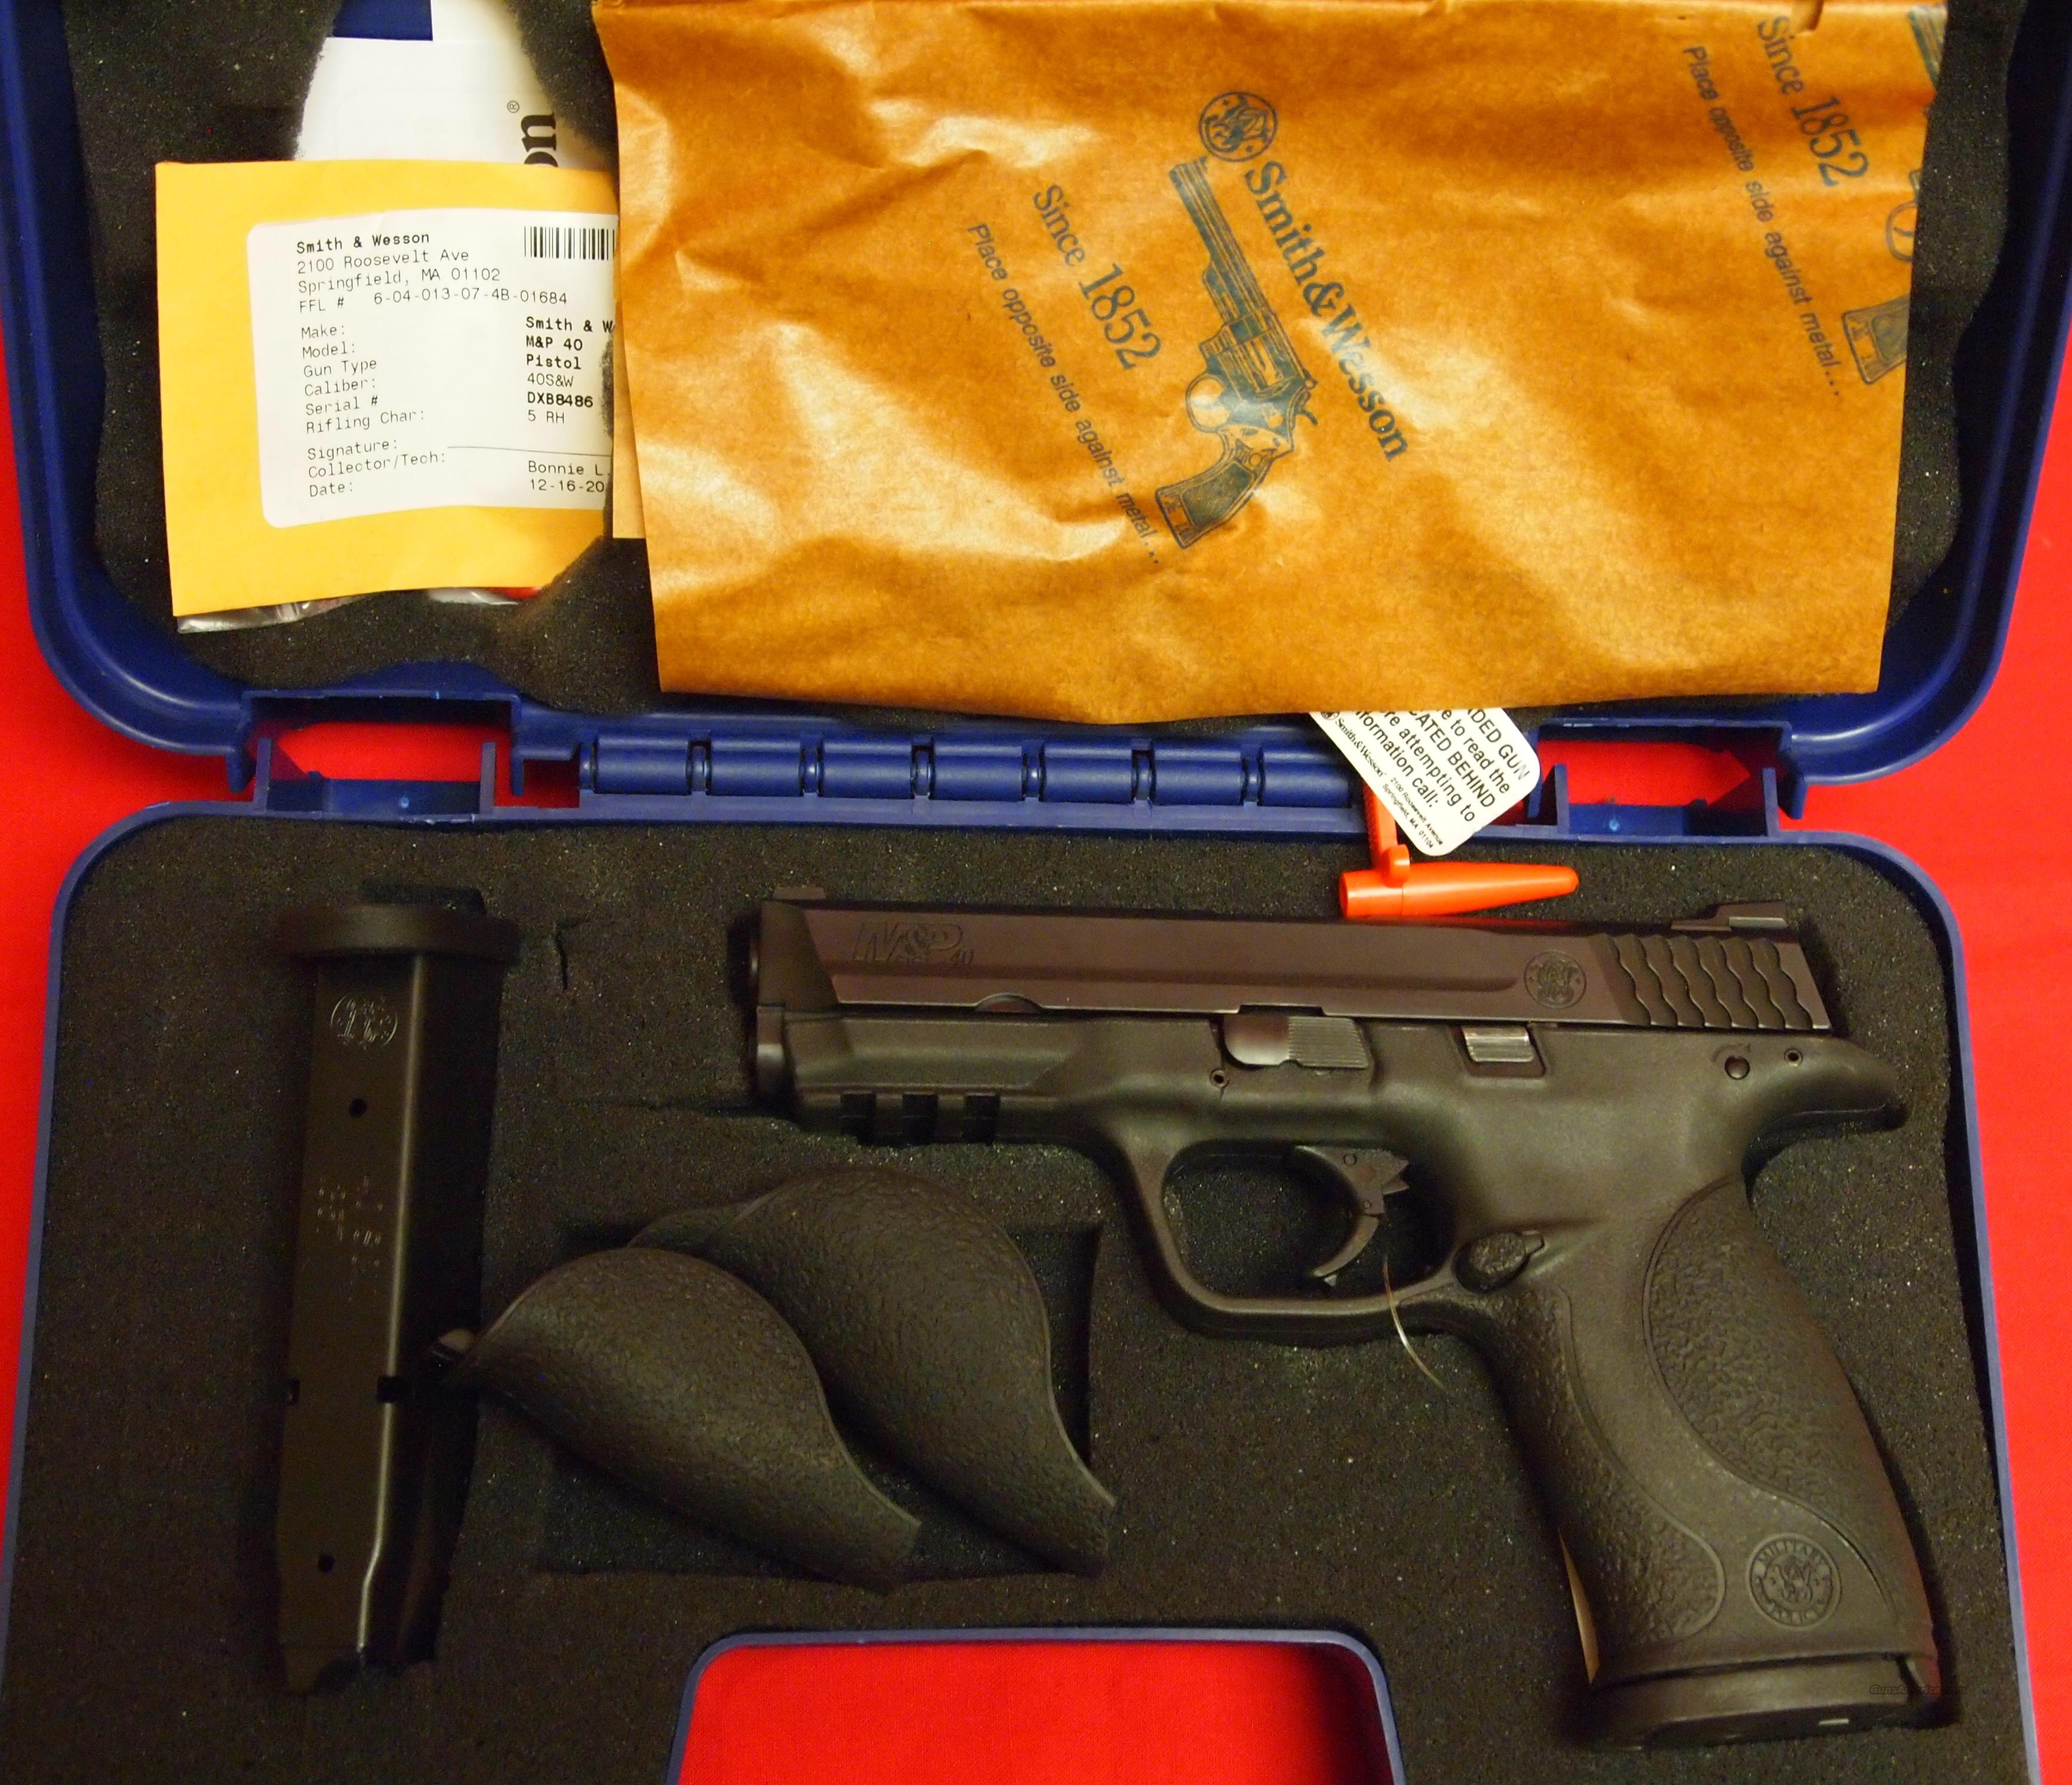 Smith & Wesson M&P40 .40S&W  Guns > Pistols > Smith & Wesson Pistols - Autos > Polymer Frame